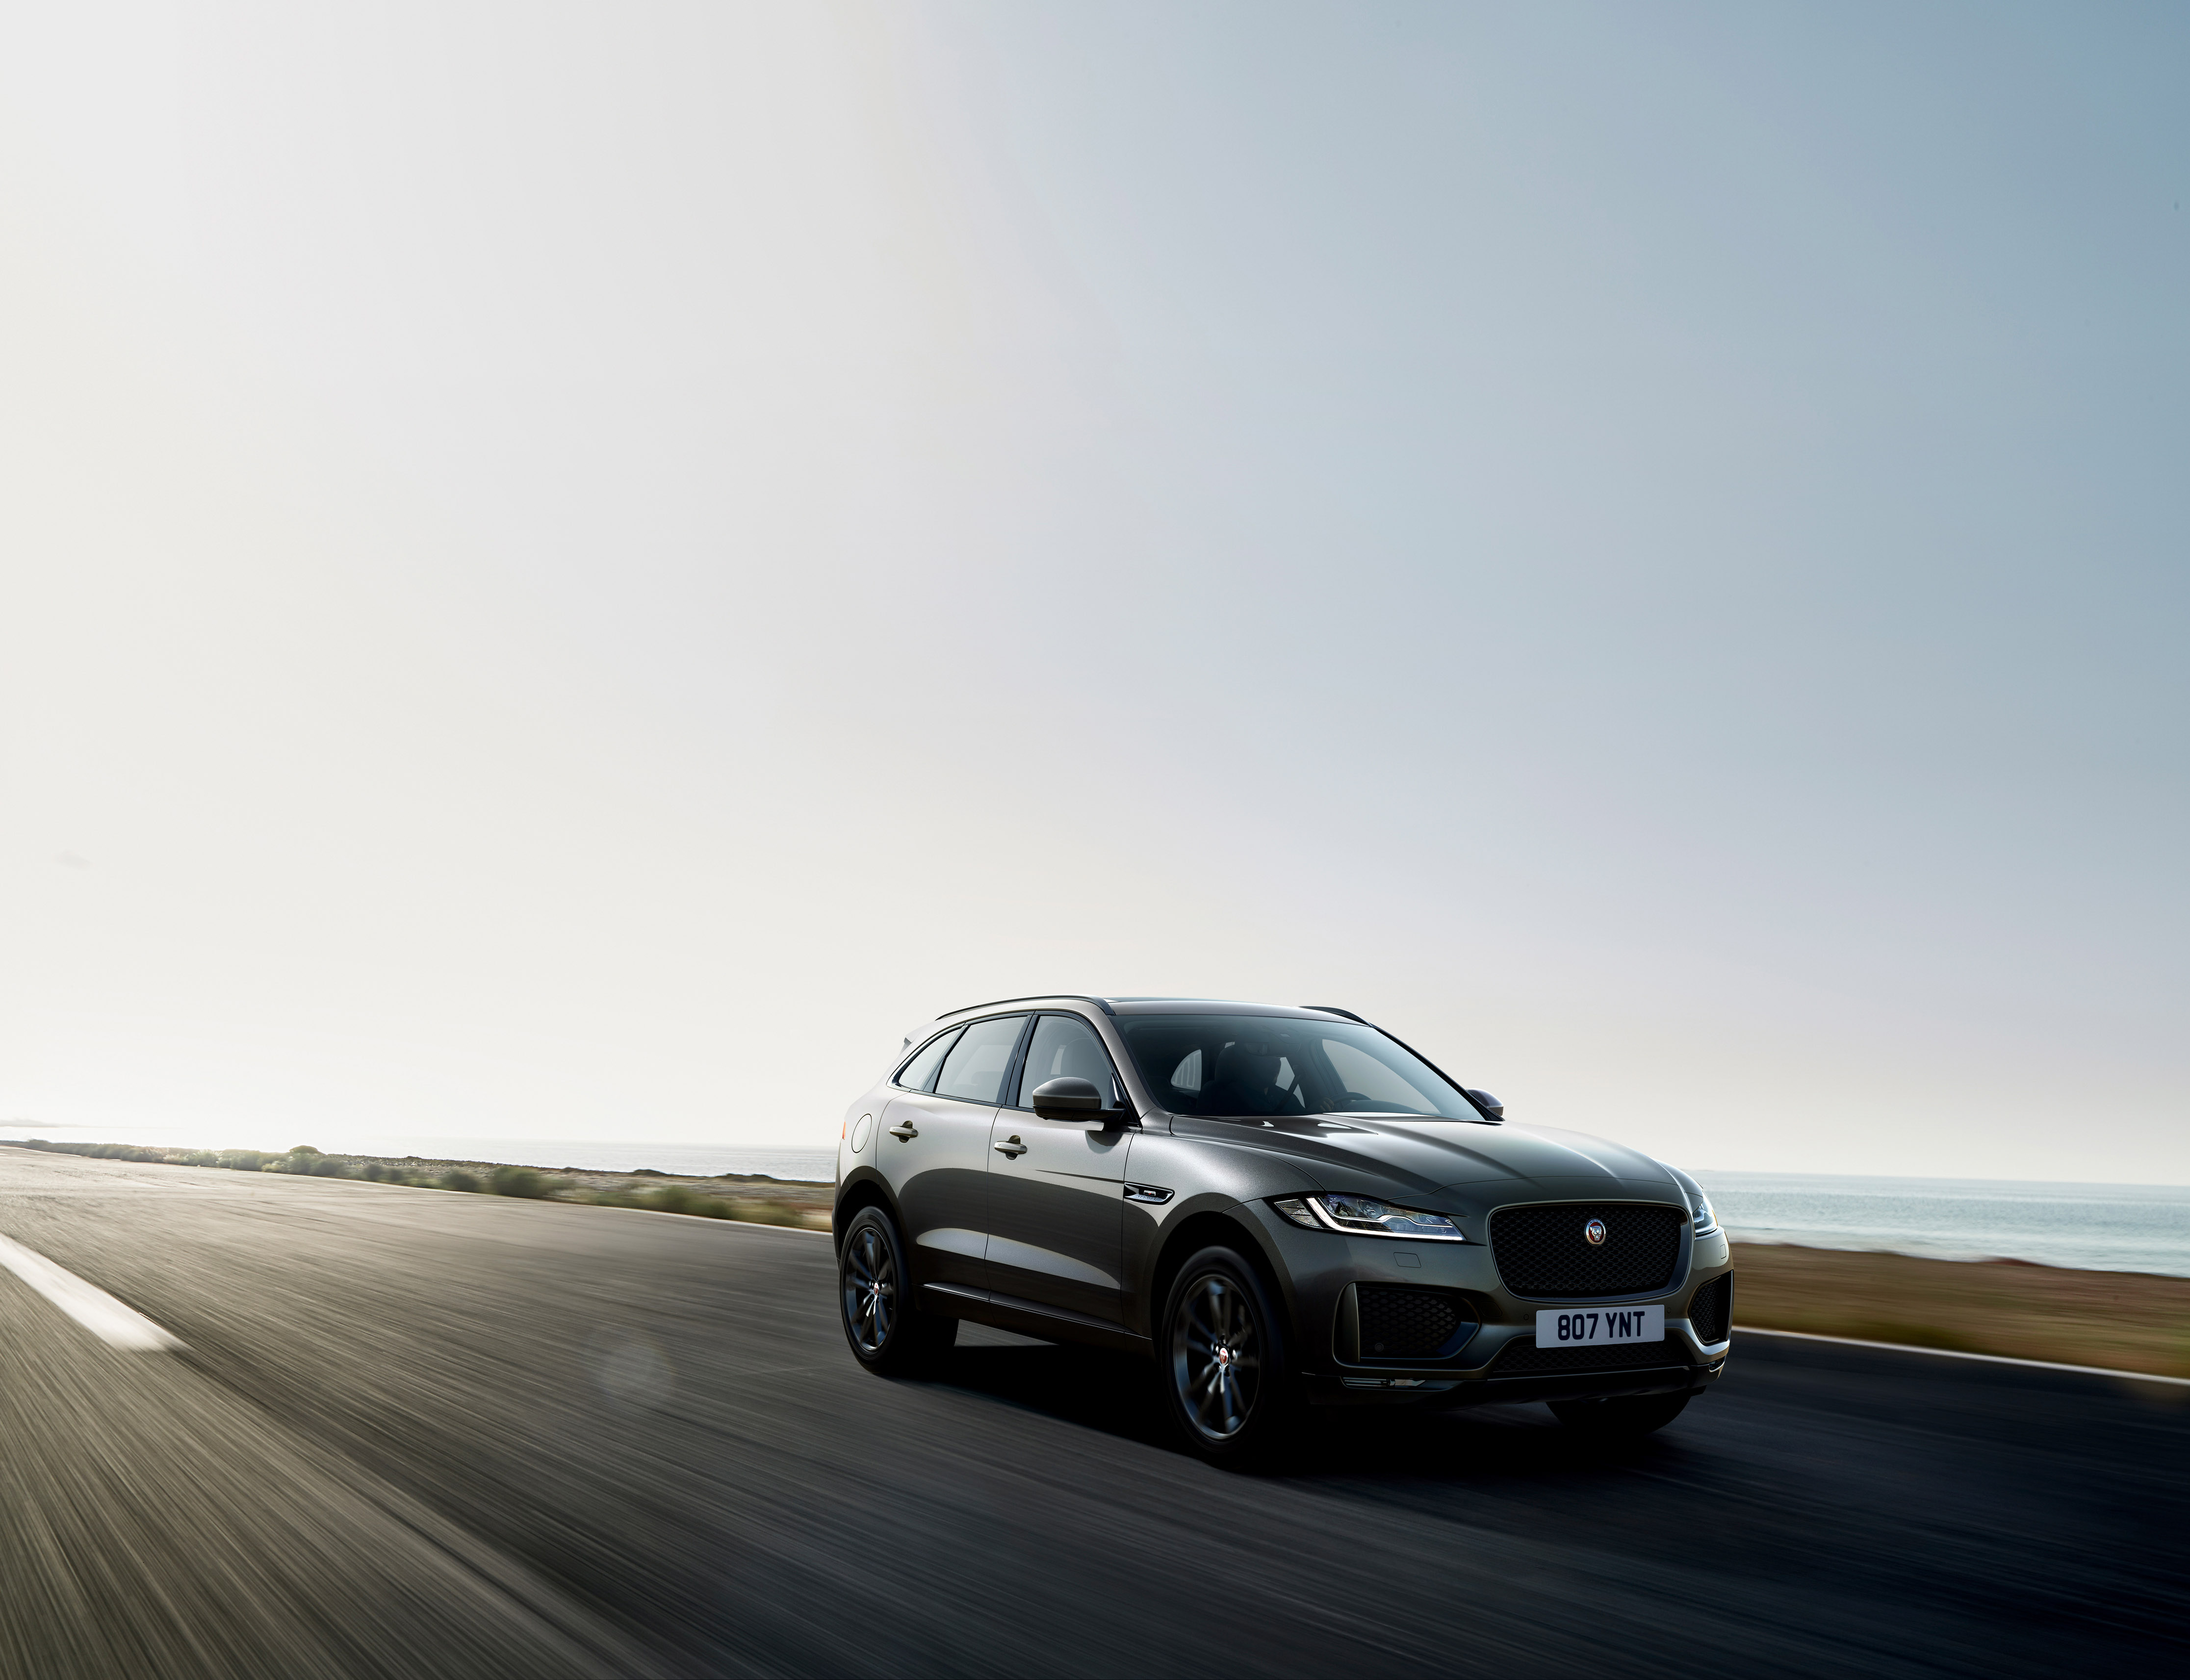 306756 jag f pace 20my chequered flag 190319 038 pr 6fcbeb original 1552999968